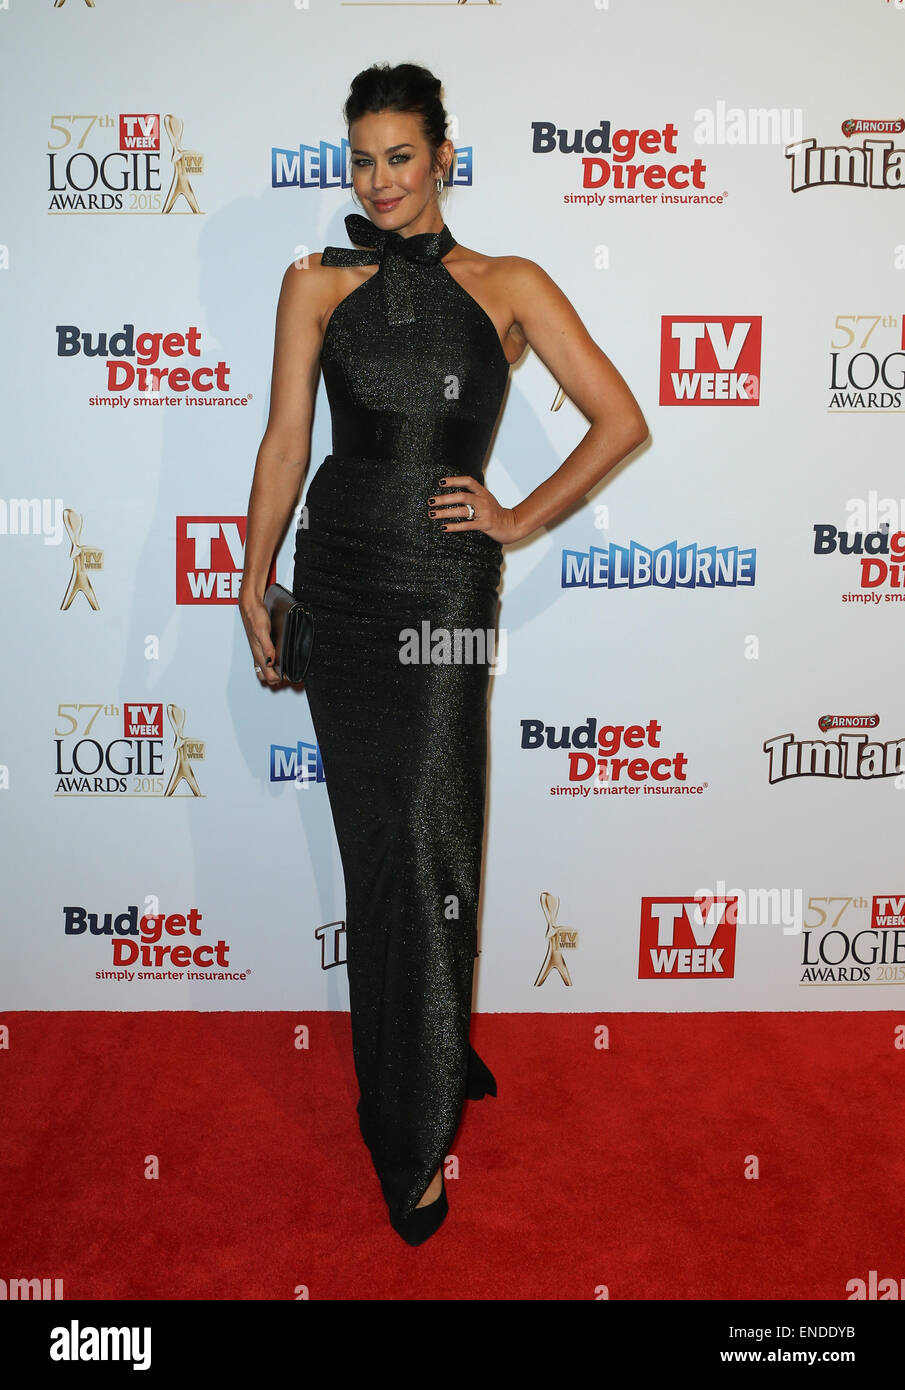 Megan Gale arriving at the 2015 Logies Awards, Melbourne, Australia - Stock Image